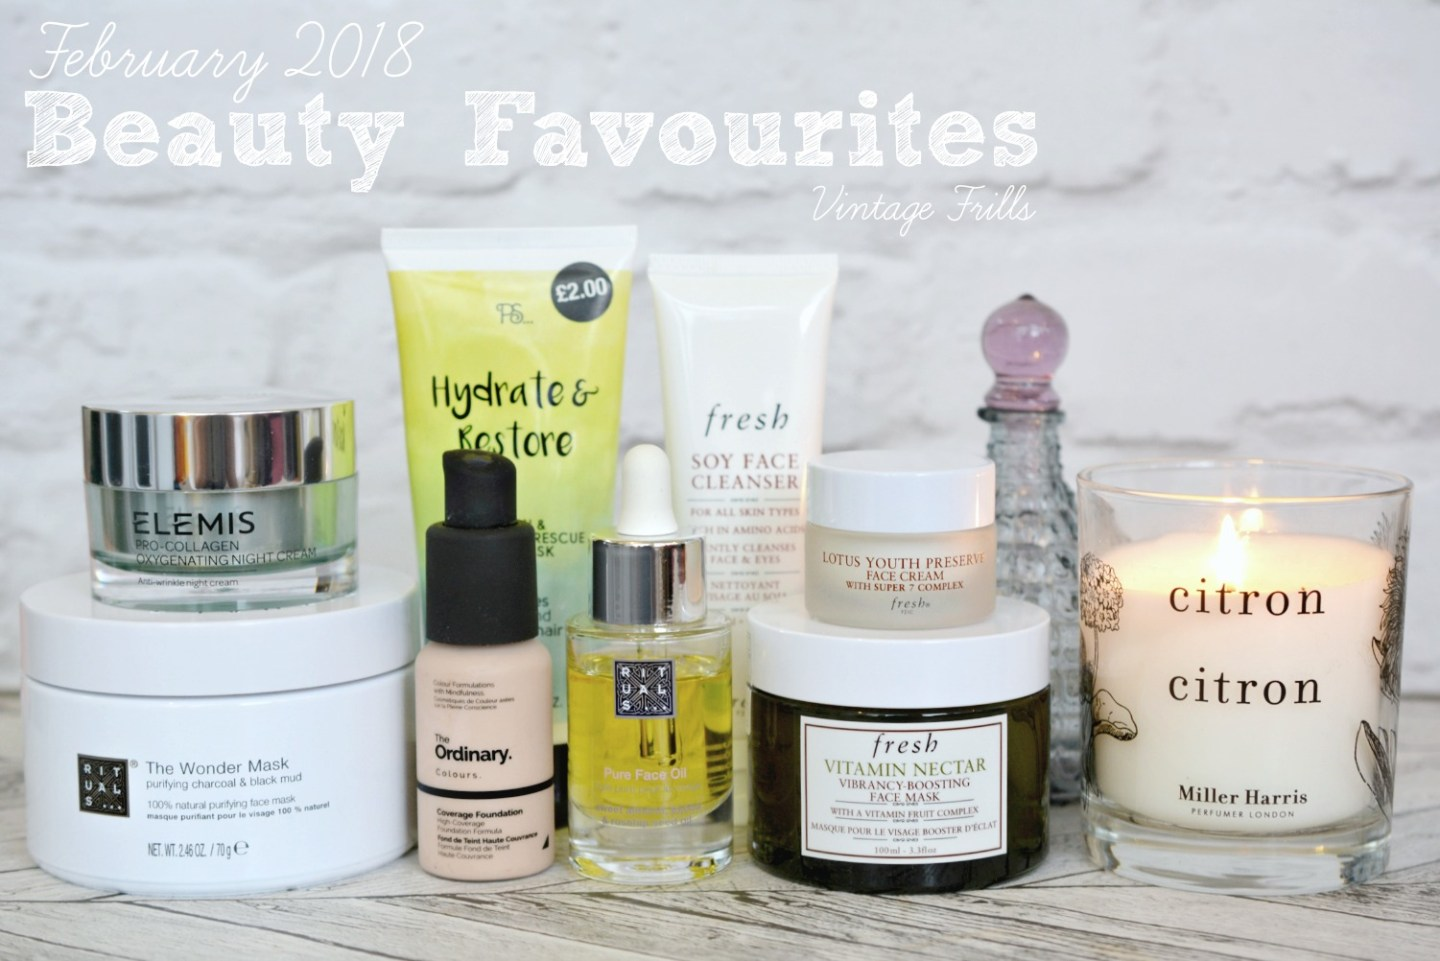 February 2018 Beauty Favourites